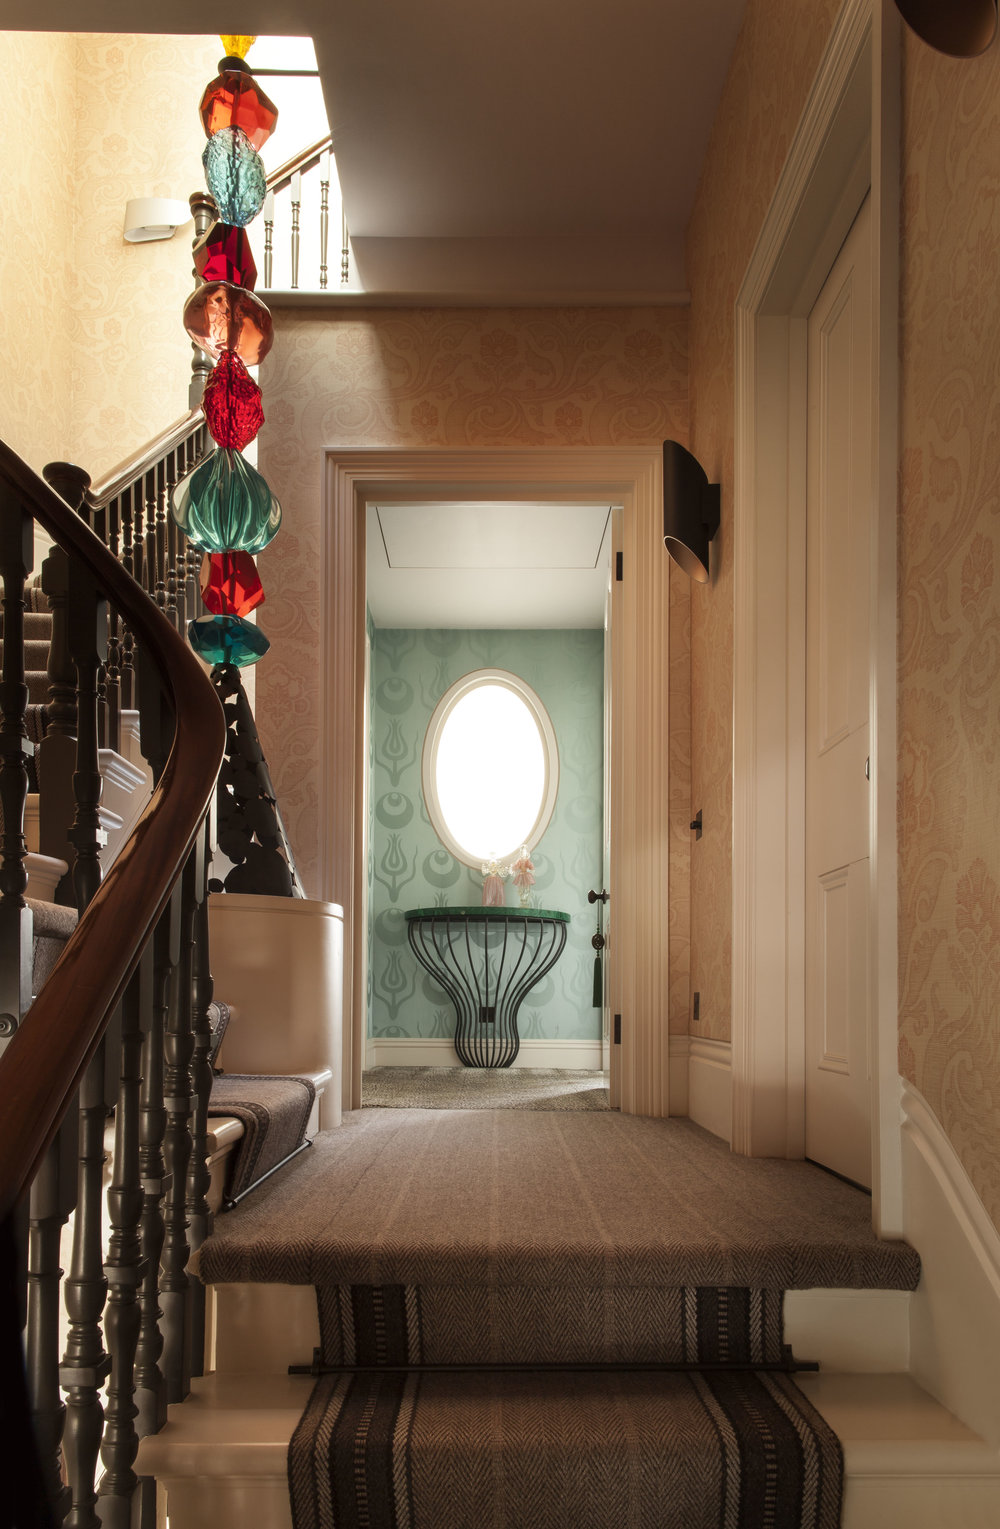 STAIRWAY Featuring Ashley's Cast-Resin Totem Sculpture as a banister and Ashley's custom Bargello-print wallpaper